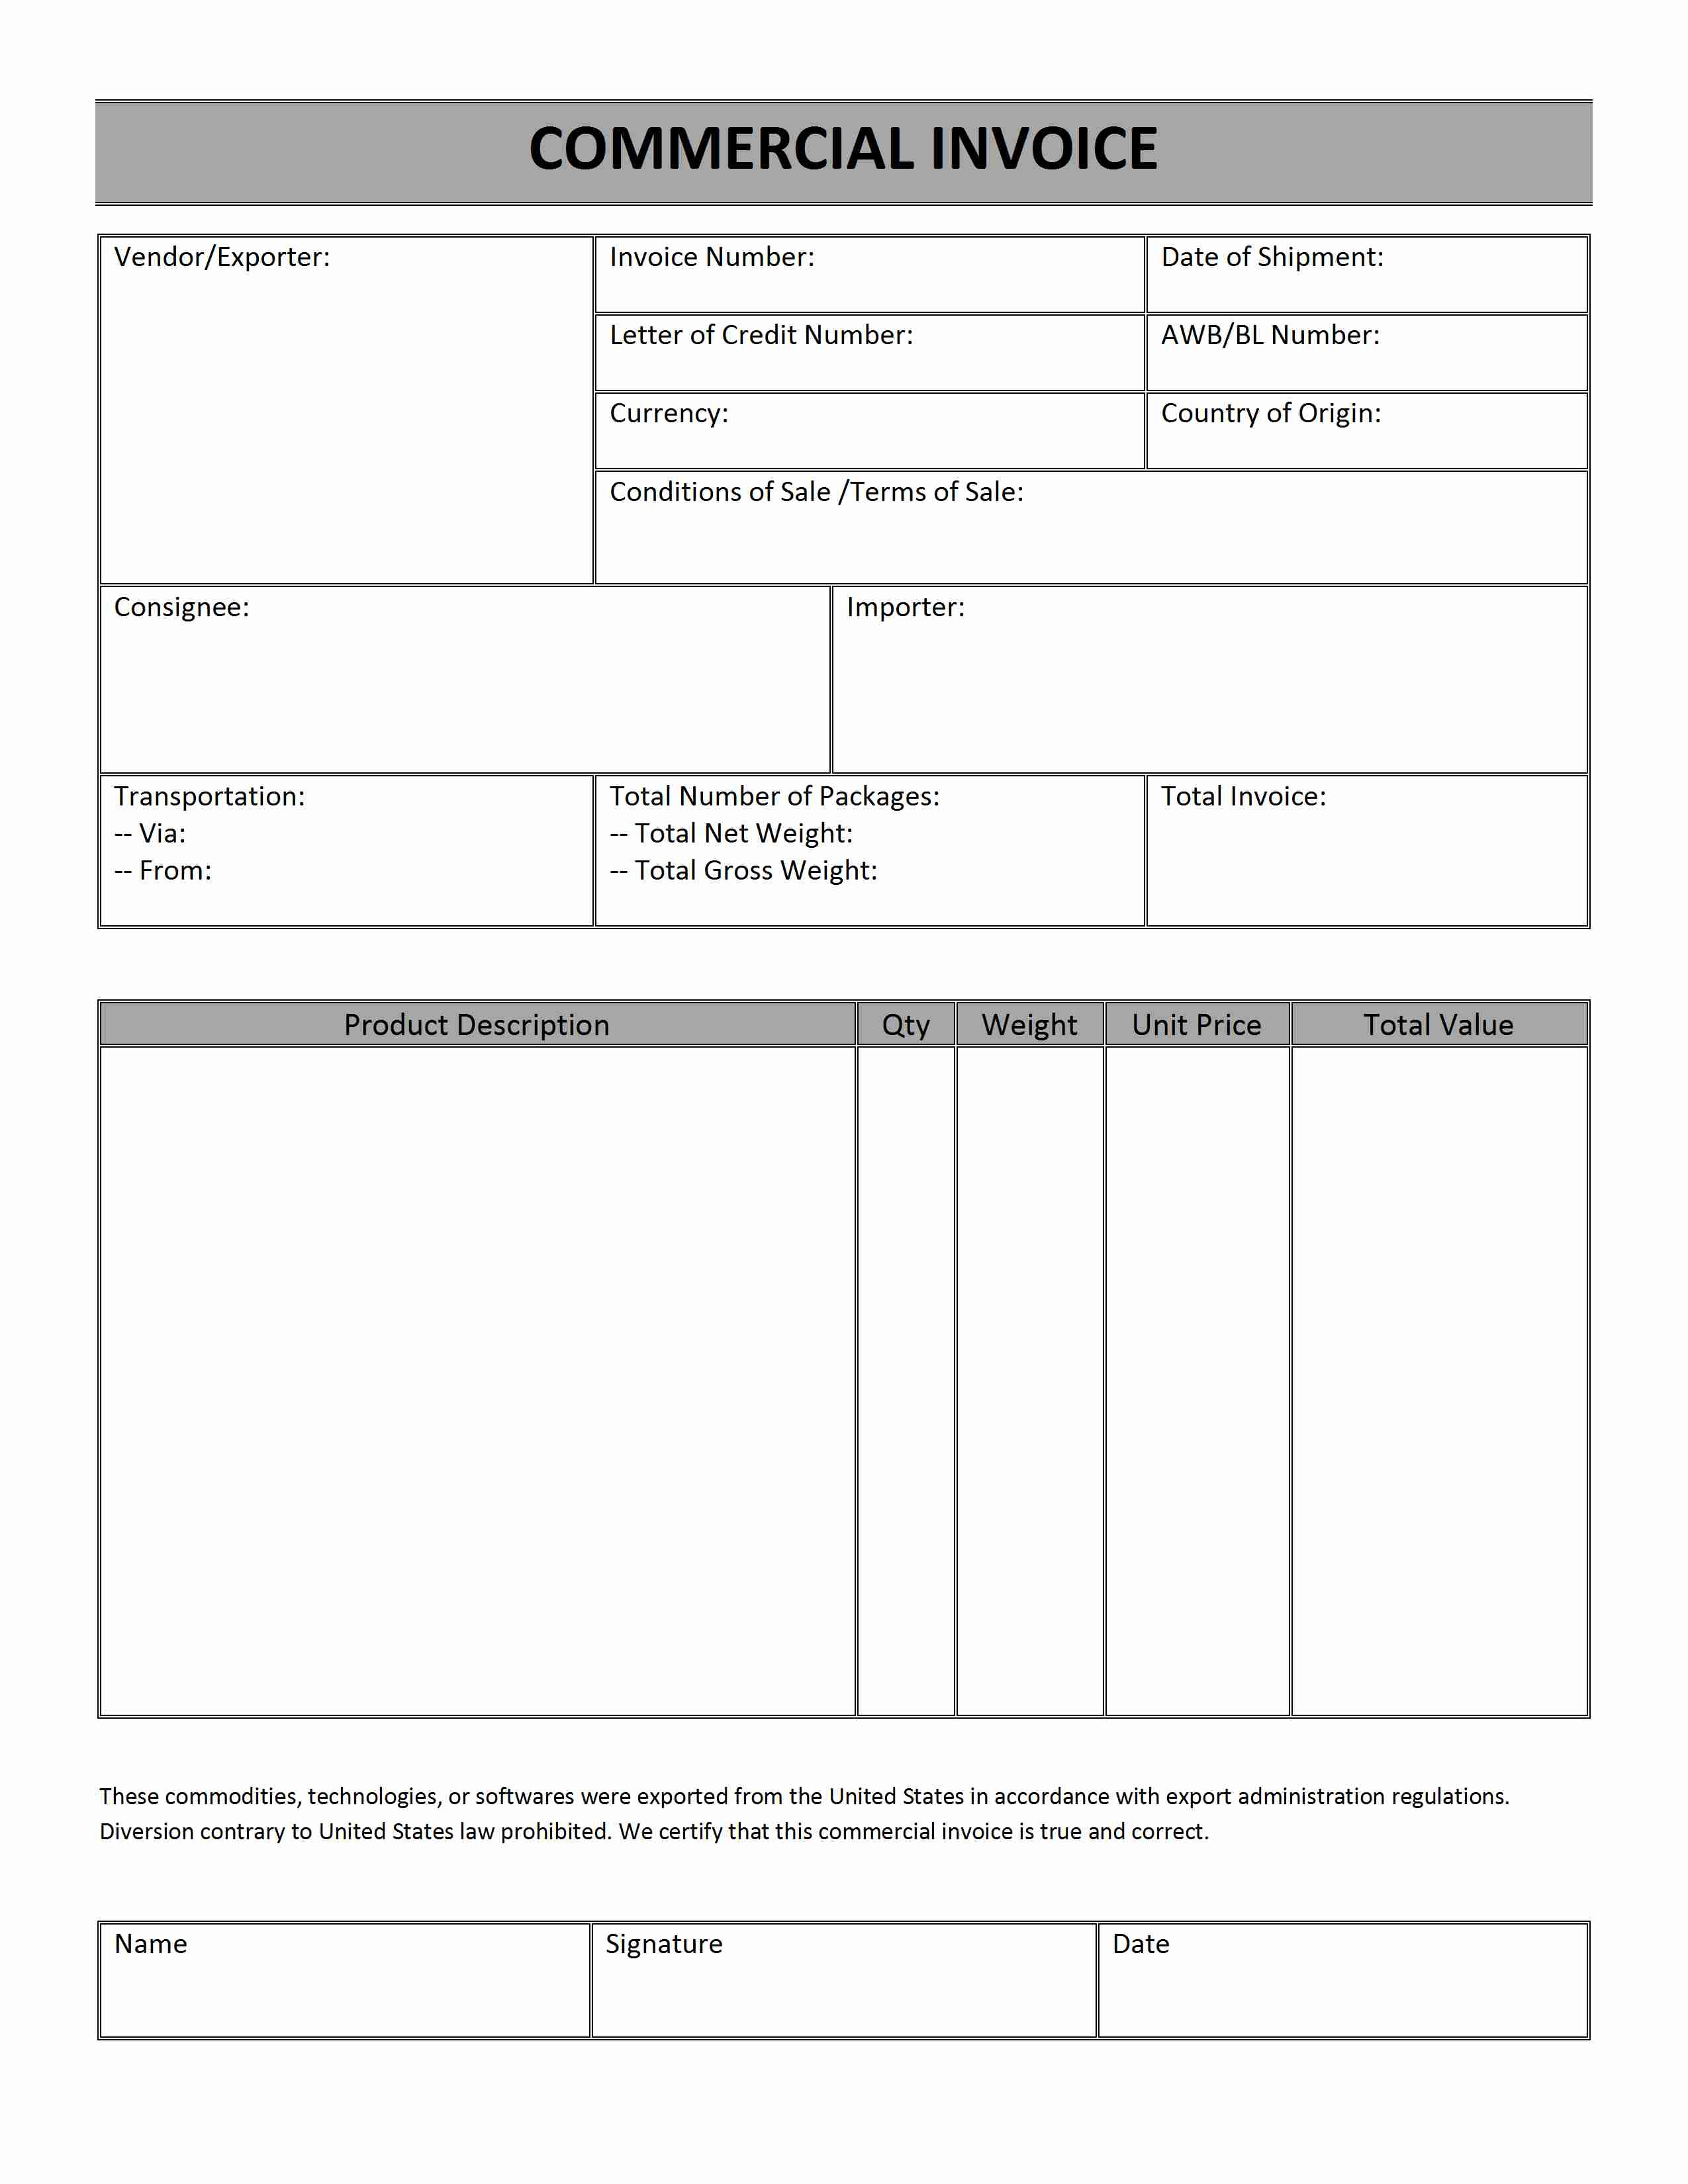 Coolmathgamesus  Outstanding Printable Sales Invoice Simple Invoice Form Free Invoice  With Likable Printable Receipt Free  Free Printable Raffle Tickets  Receipt   Printable With Extraordinary Parking Invoice Ticket Also Recruitment Invoice In Addition Cloud Invoice Software And Proforma Invoice Format Doc As Well As Vehicle Sales Invoice Additionally Php Invoicing System From Happytomco With Coolmathgamesus  Likable Printable Sales Invoice Simple Invoice Form Free Invoice  With Extraordinary Printable Receipt Free  Free Printable Raffle Tickets  Receipt   Printable And Outstanding Parking Invoice Ticket Also Recruitment Invoice In Addition Cloud Invoice Software From Happytomco